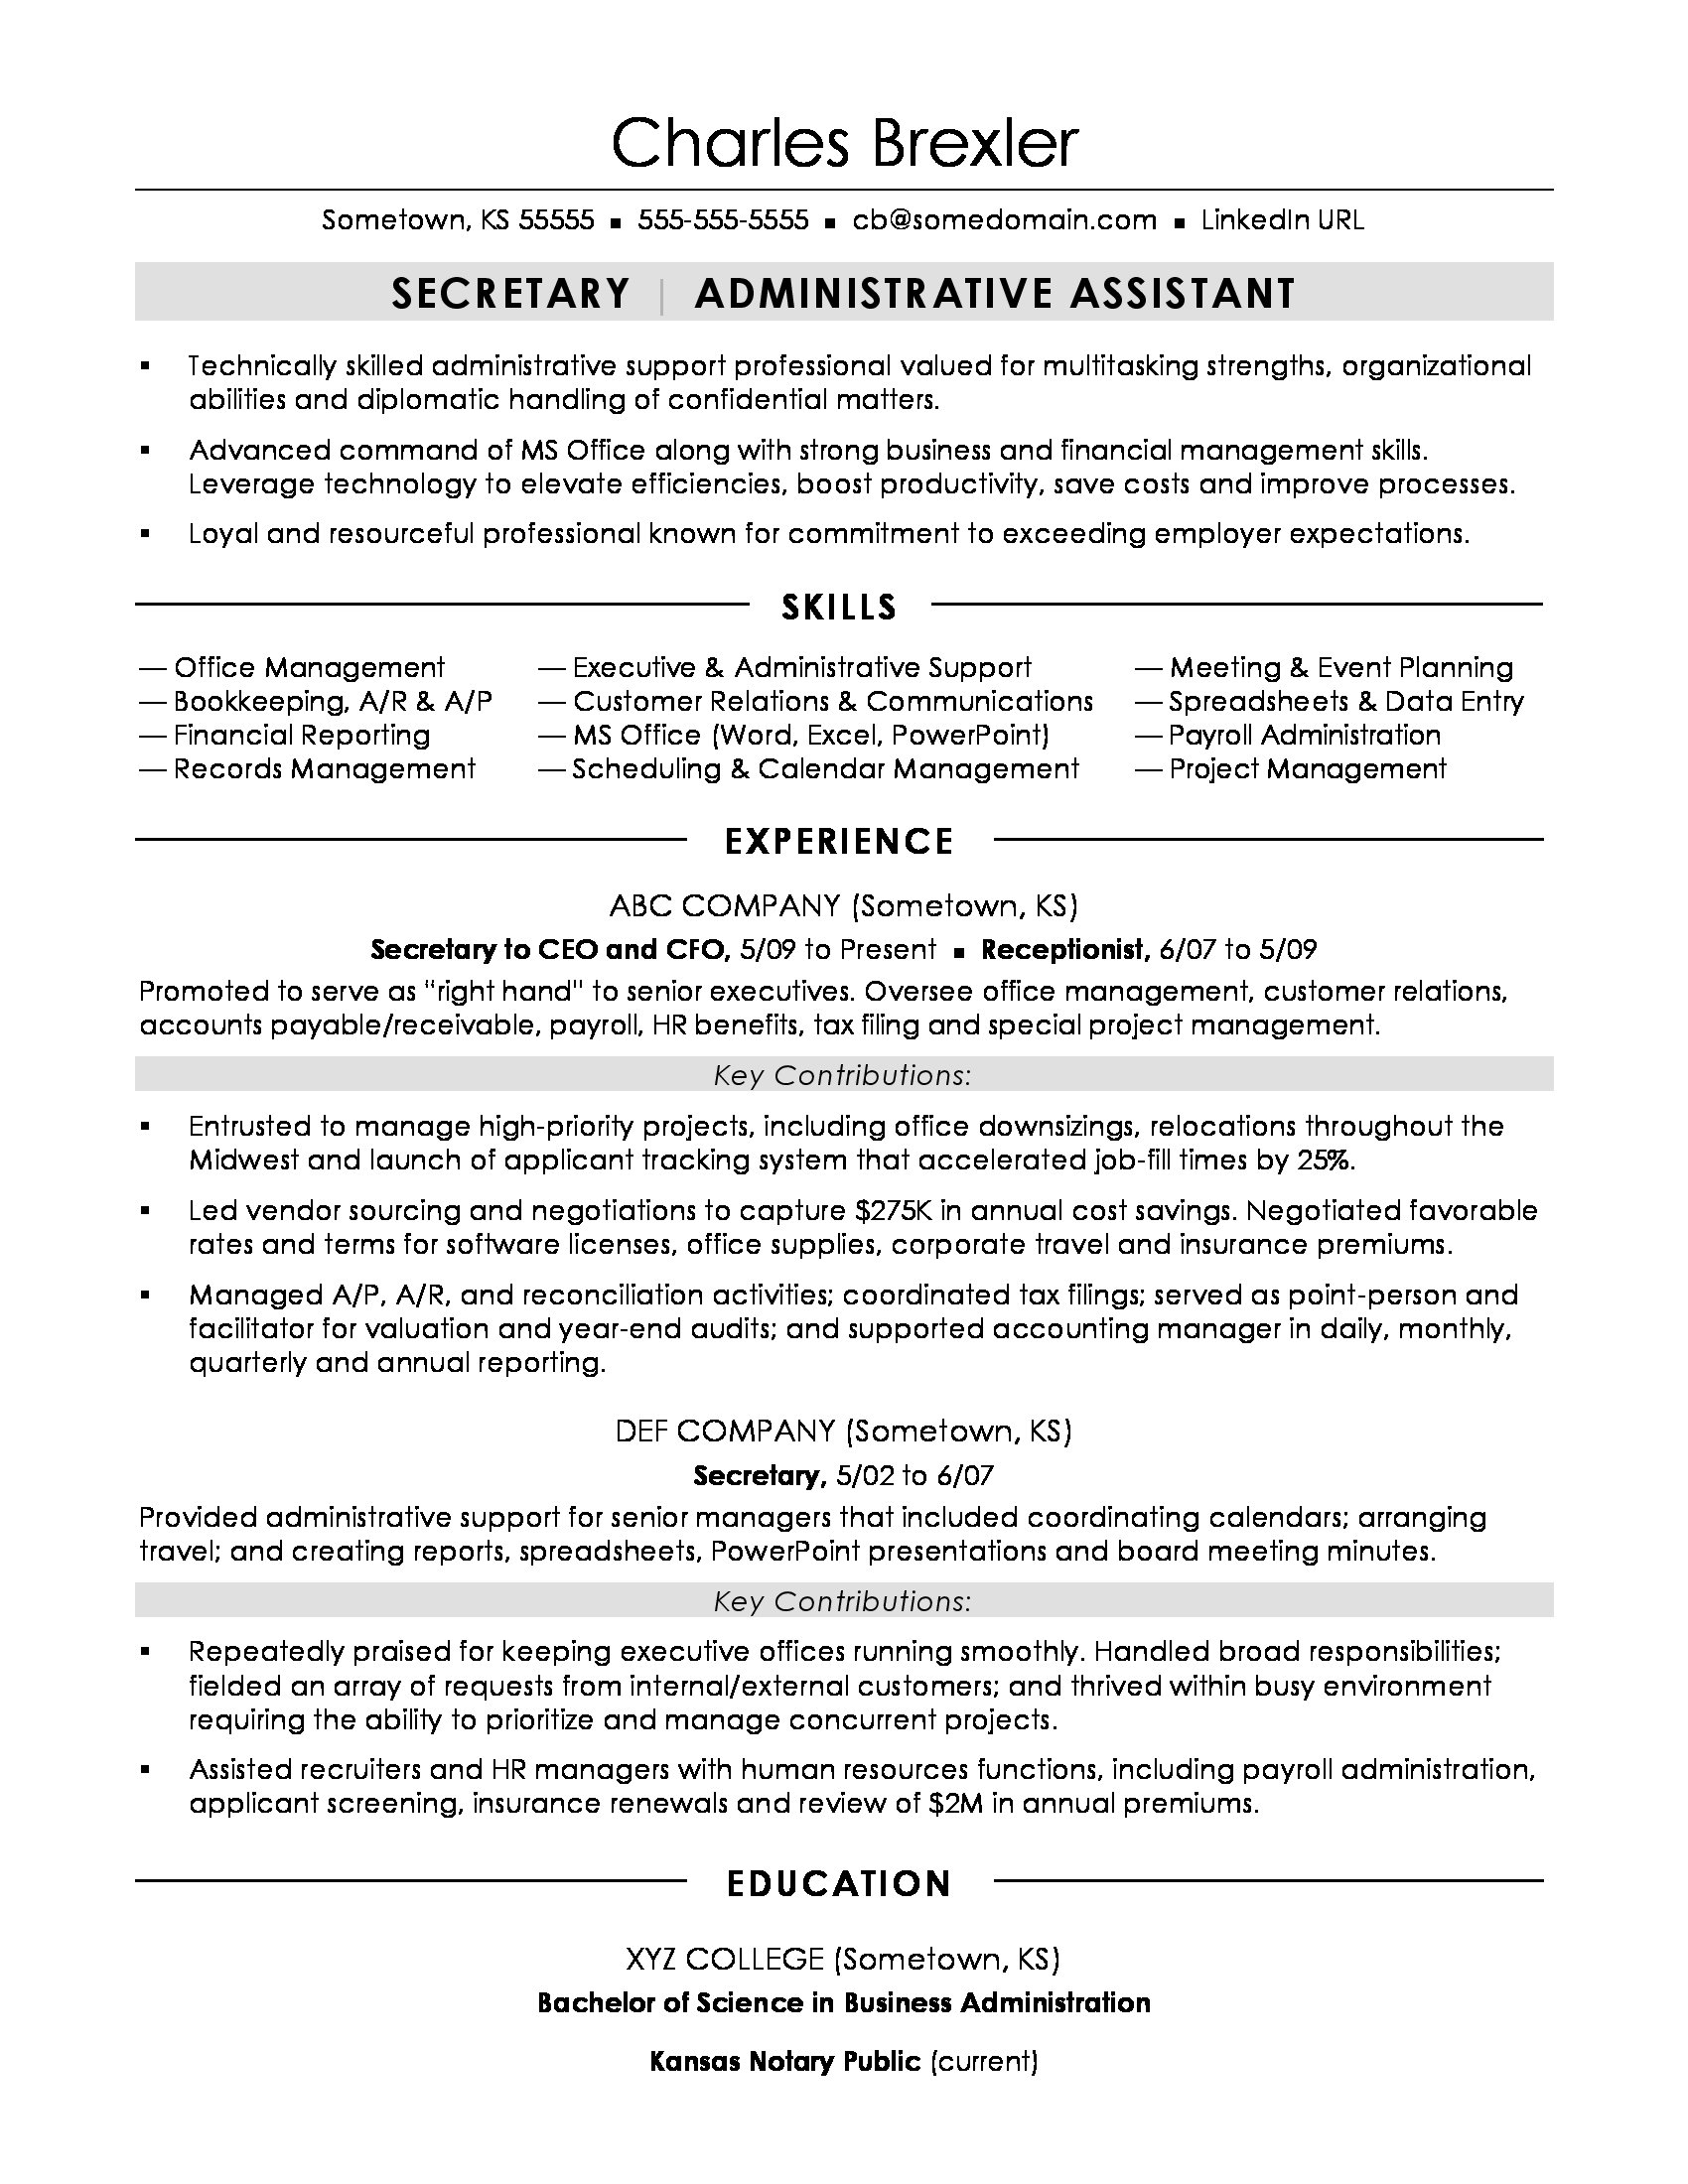 secretary resume sample monster examples indeed review ats compliant meaning insurance Resume Secretary Resume Examples